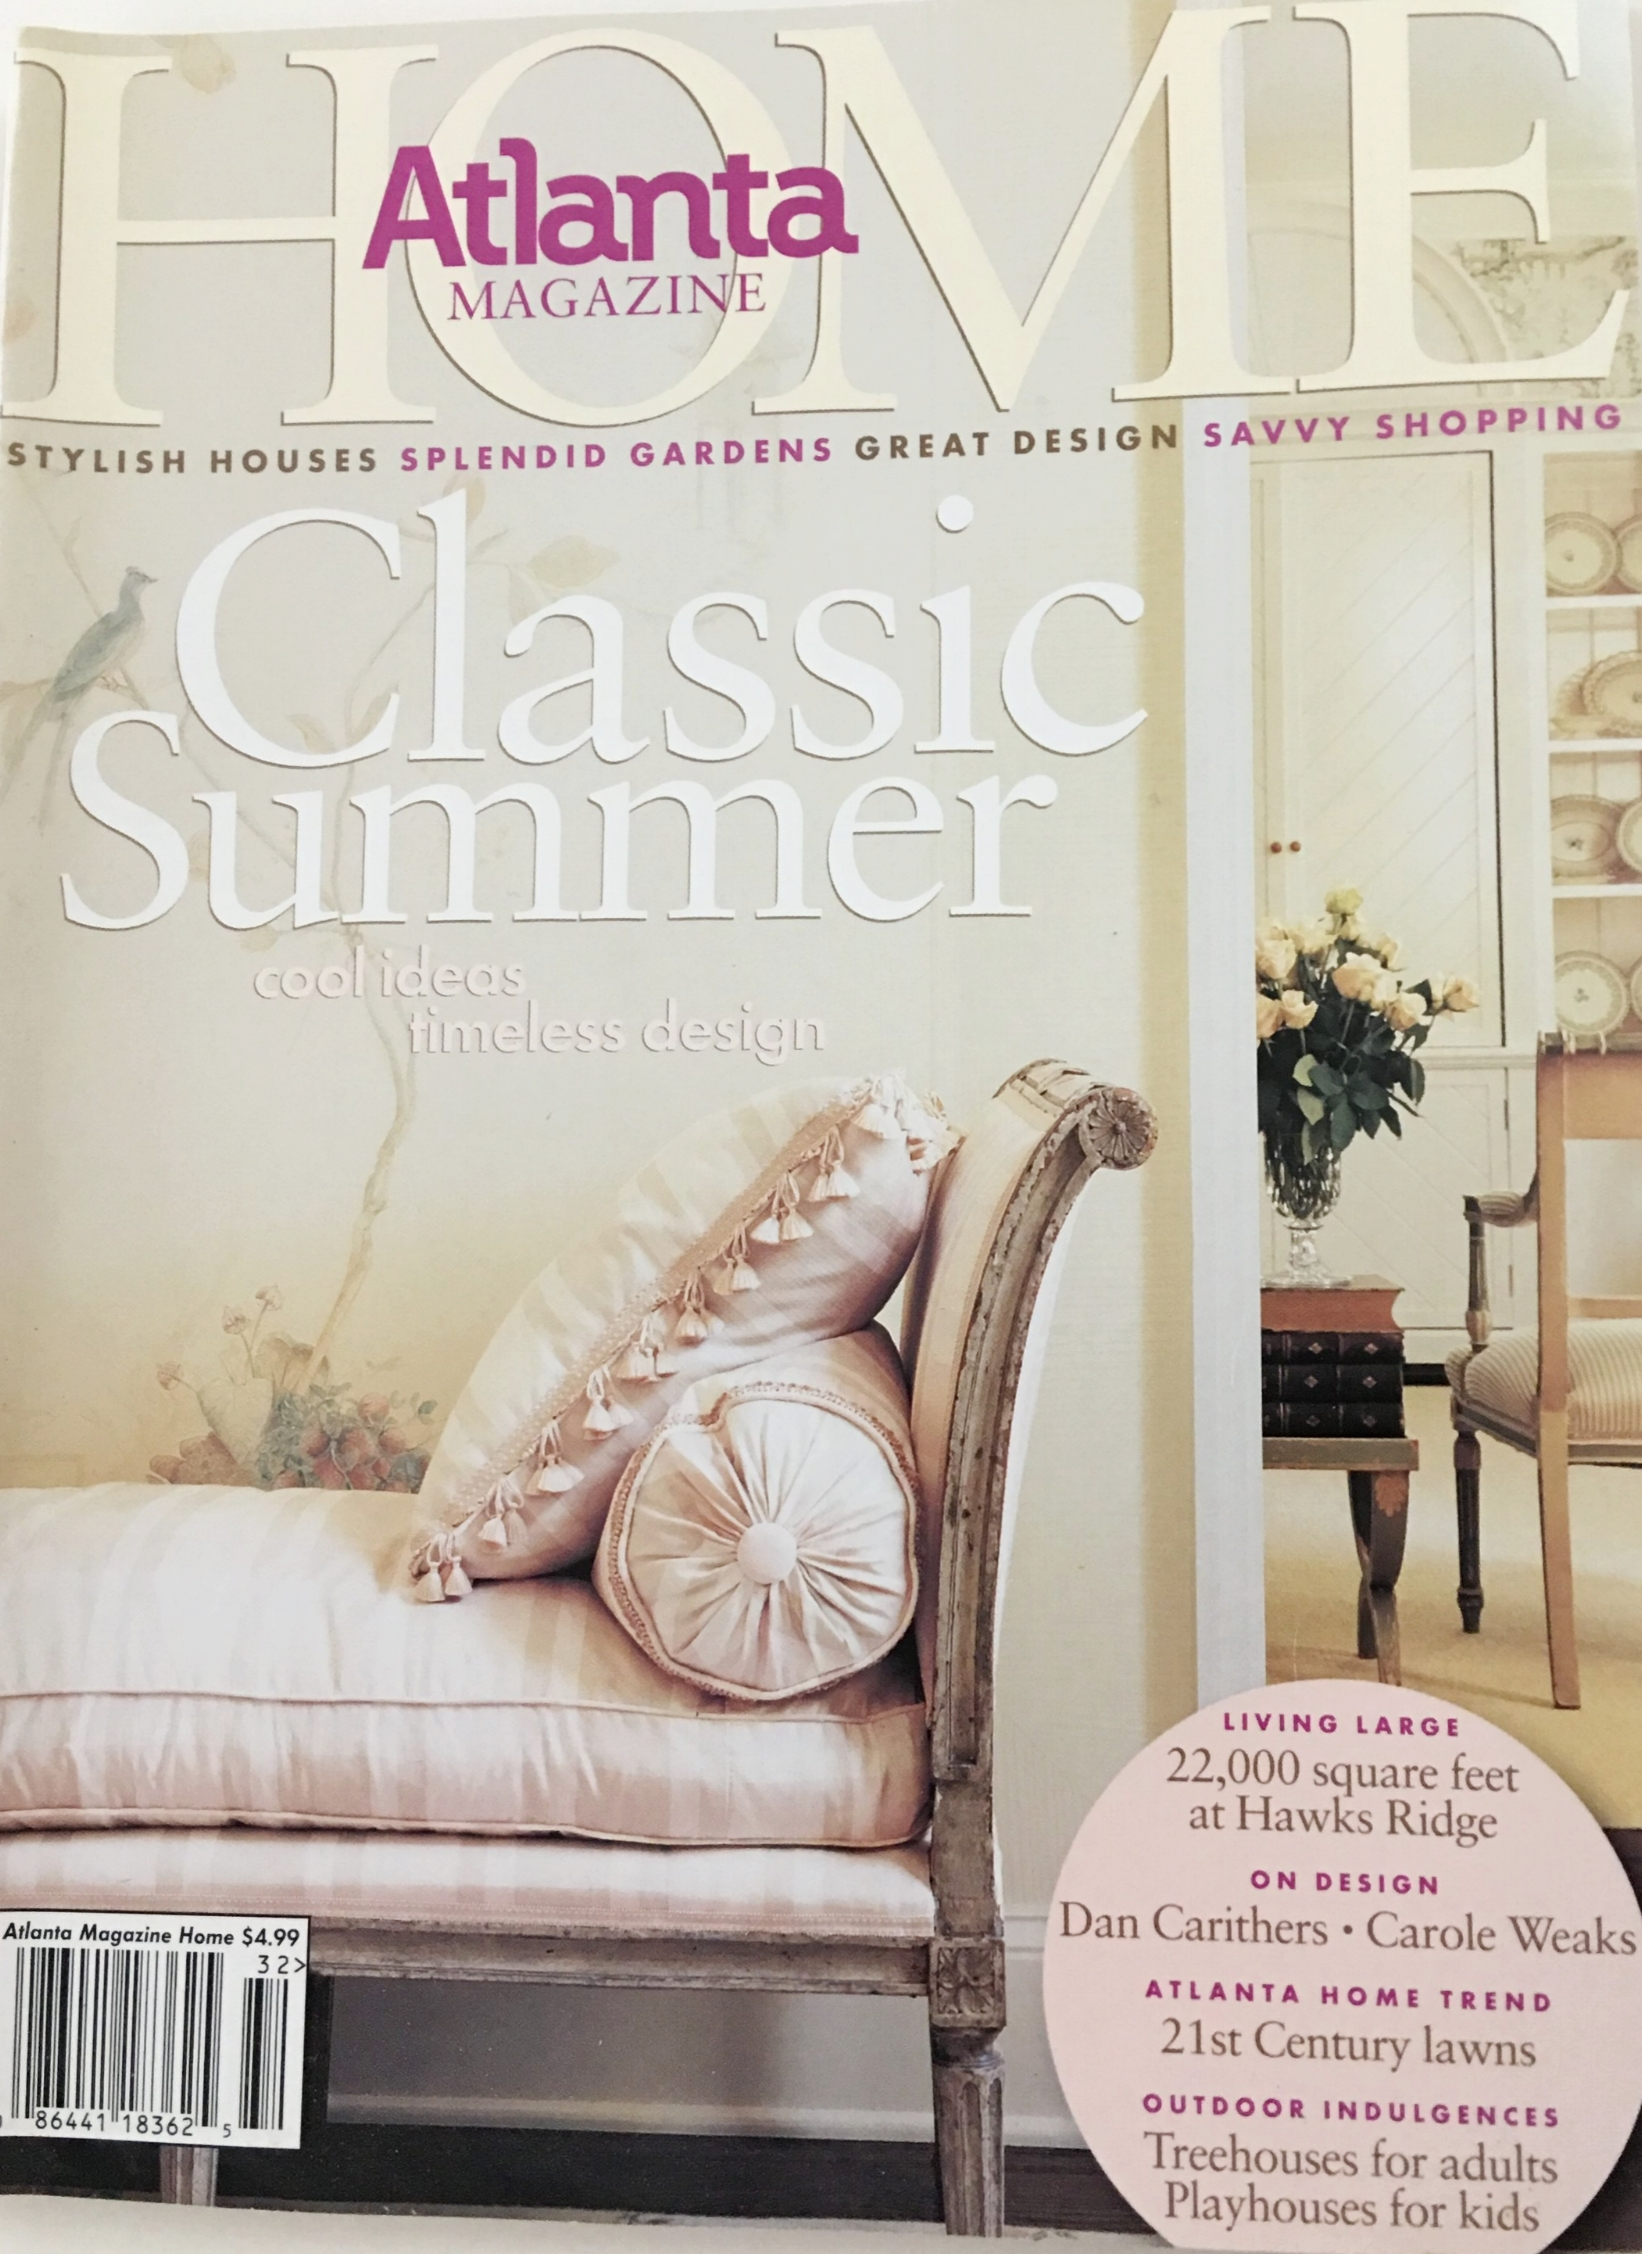 Endless Summer - Published in Atlanta Magazine's Home, Summer 2003